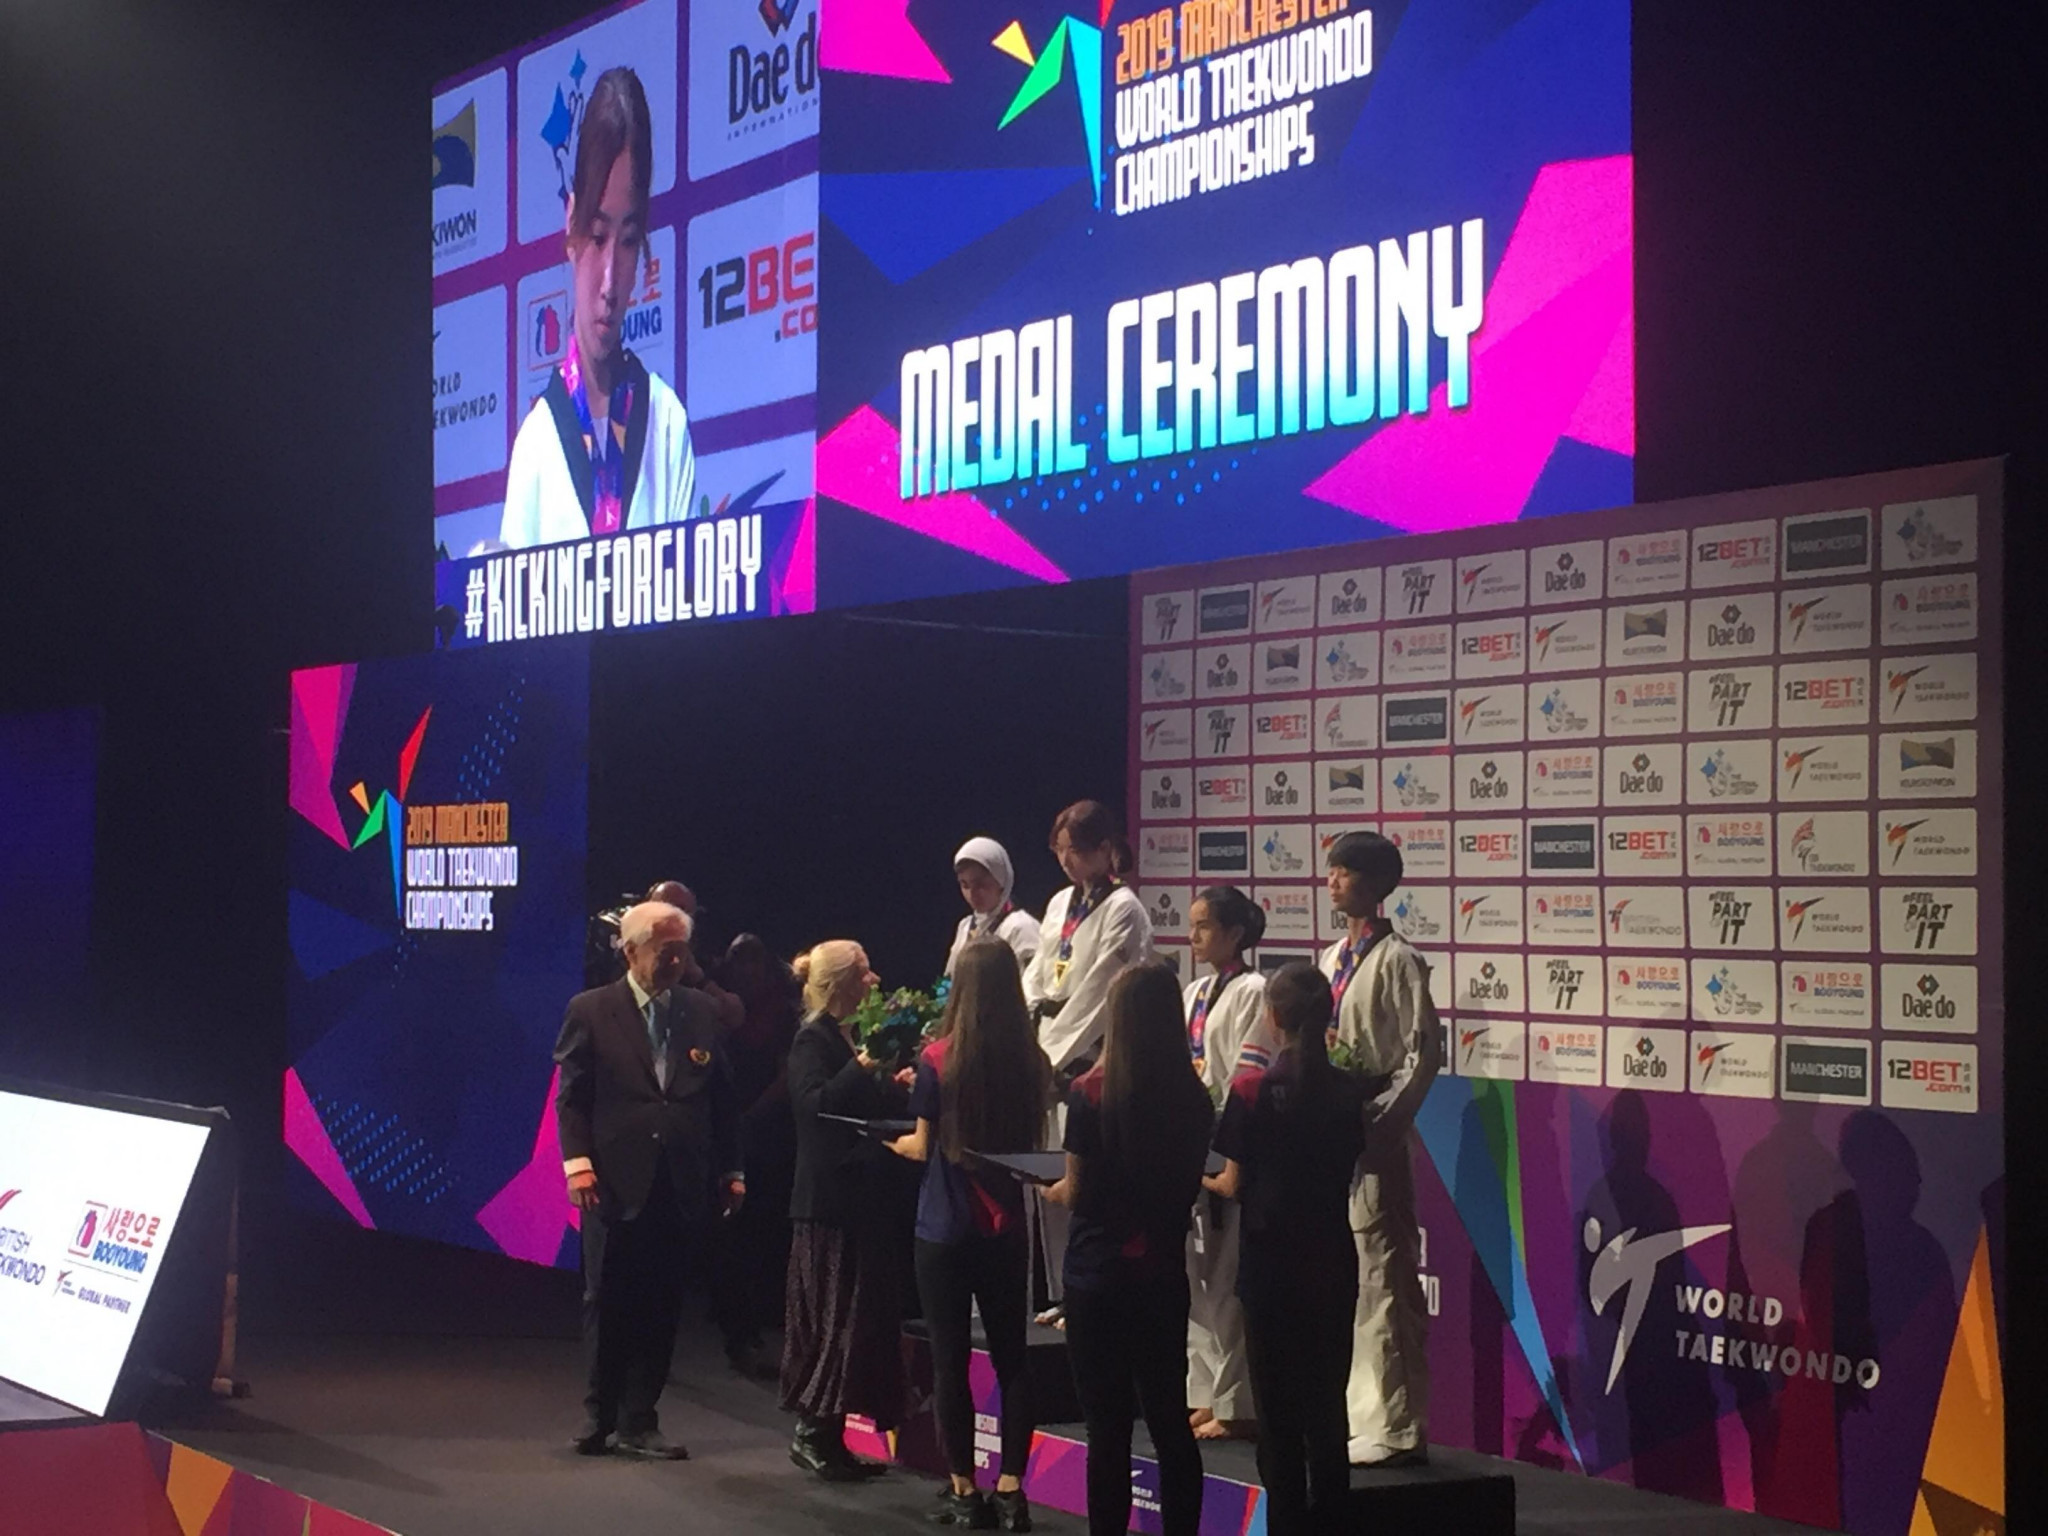 The first gold medals of the 2019 World Taekwondo Championships were awarded at Manchester Arena ©ITG